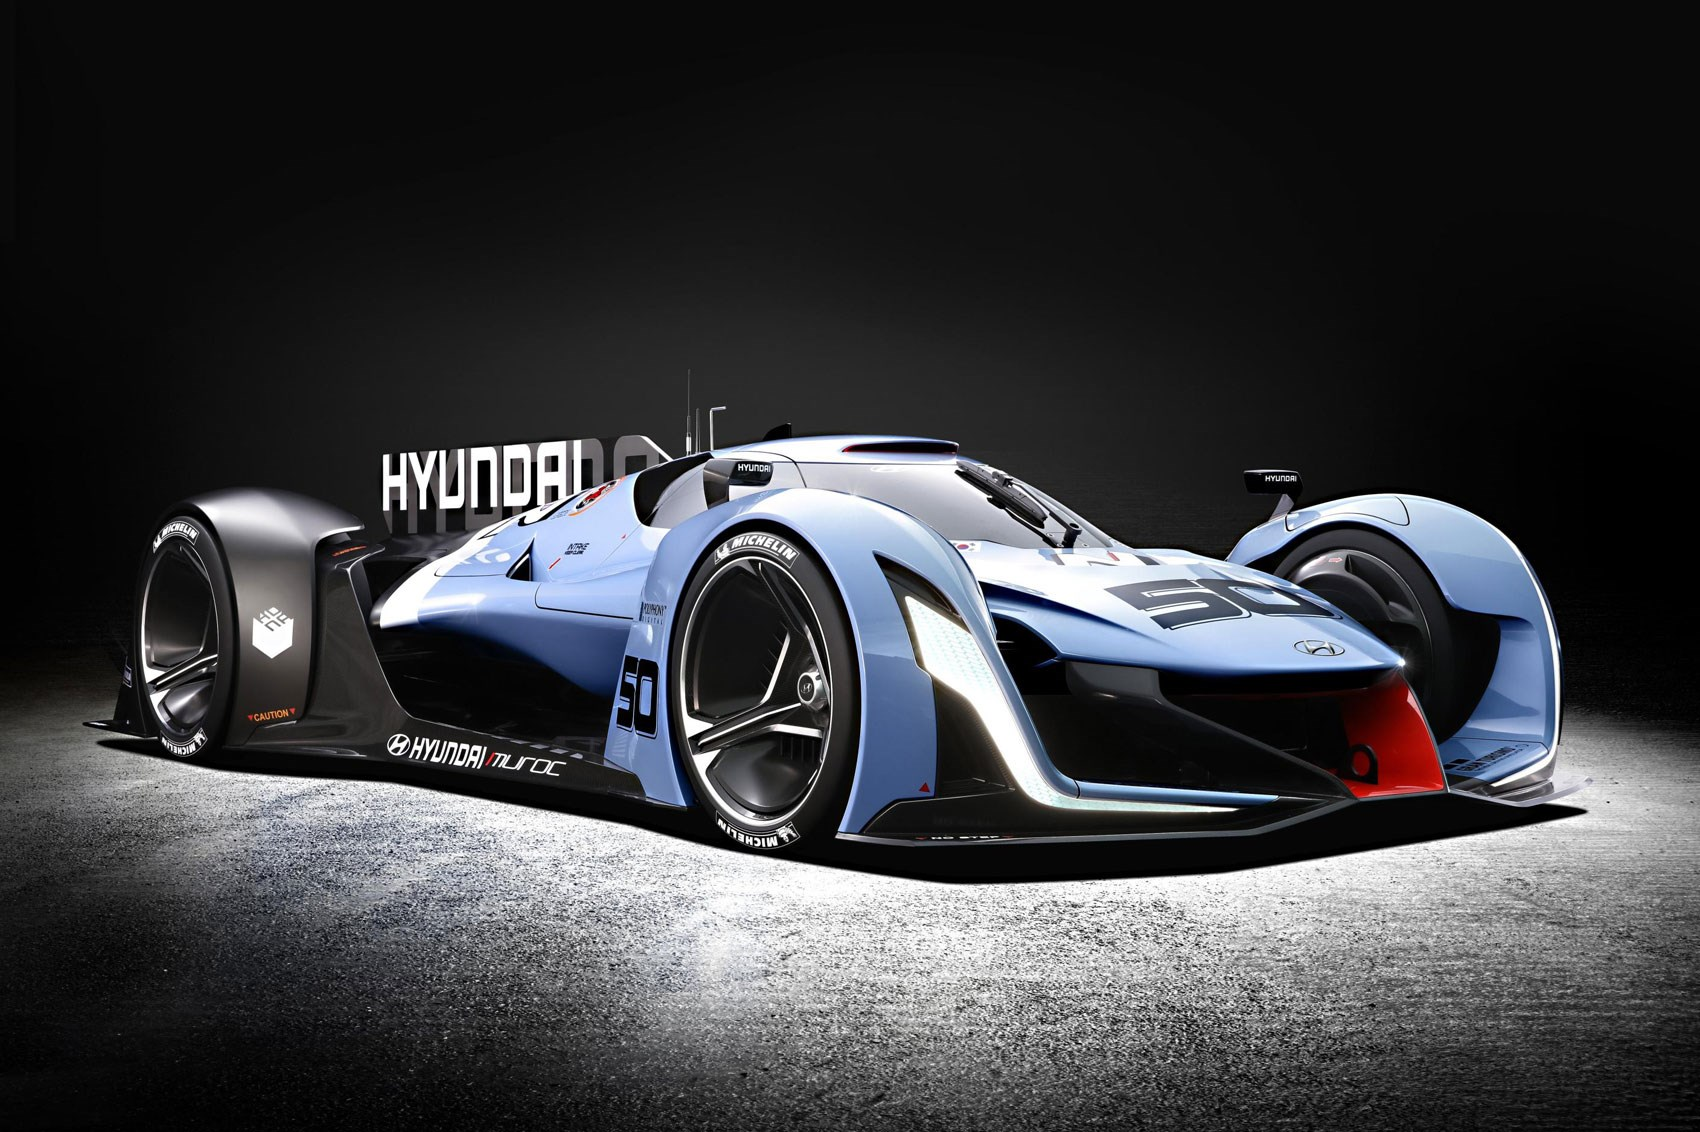 hyundai n 2025 vision gran turismo at frankfurt 2015 by car magazine. Black Bedroom Furniture Sets. Home Design Ideas